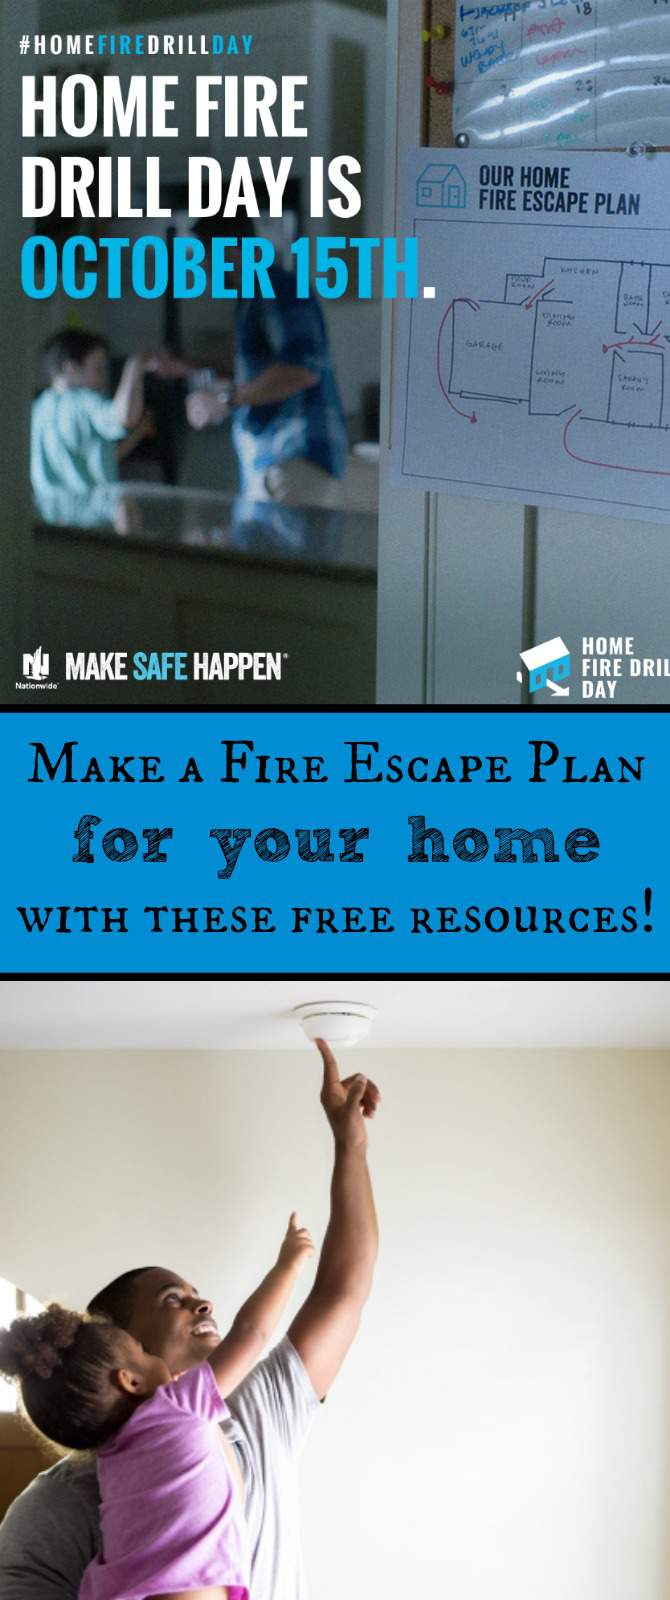 Make A Fire Escape Plan For Your Home Homefiredrillday